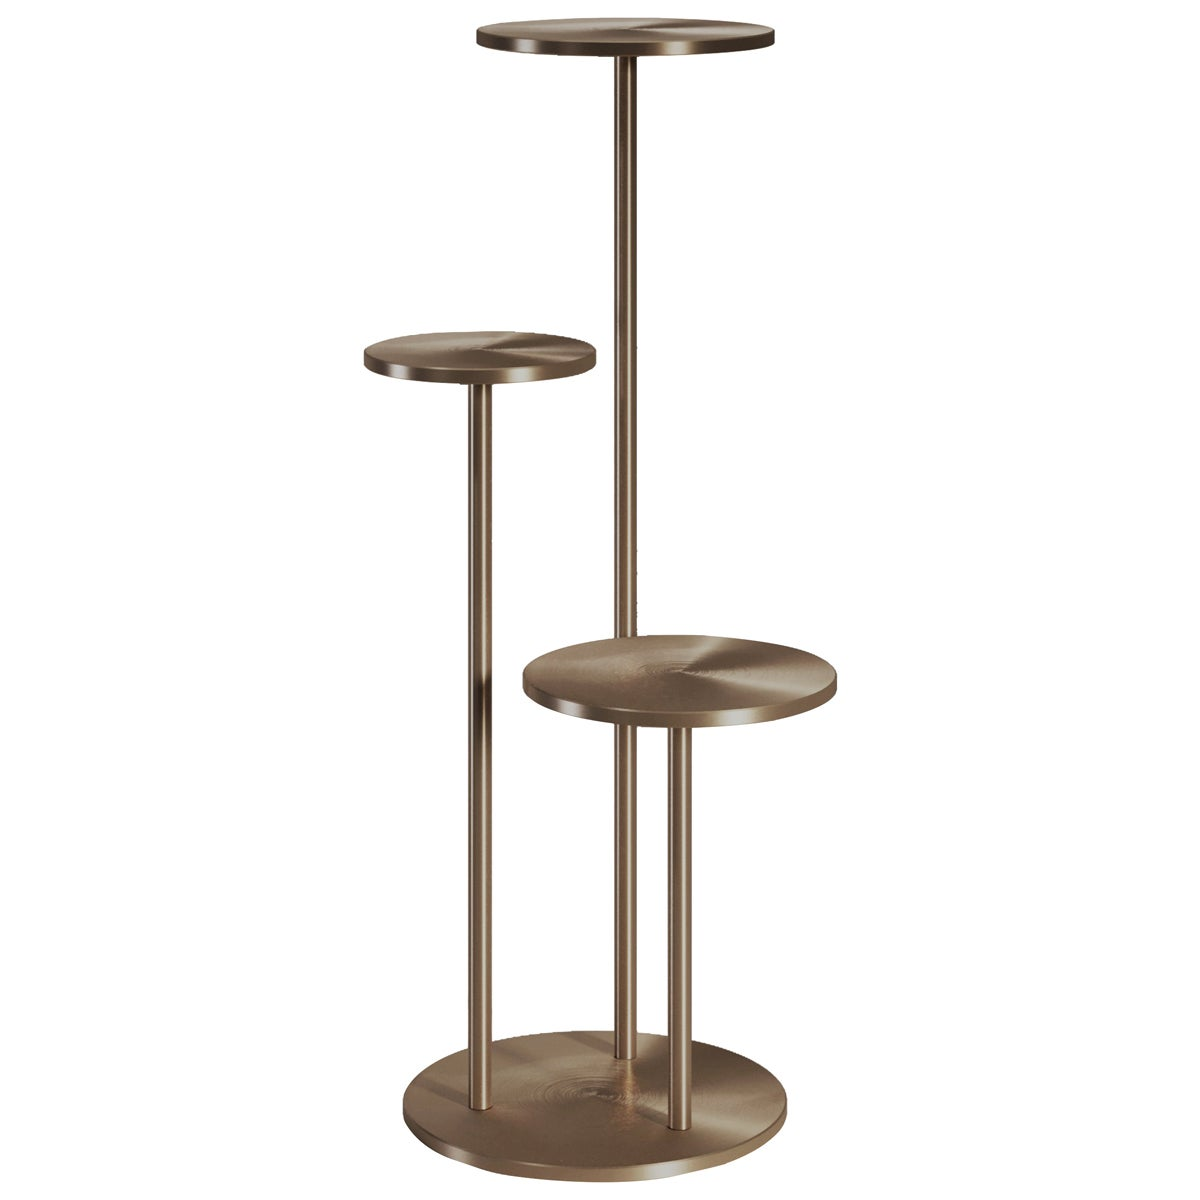 Orion Contemporary Side Table Metal by Artefatto Design Studio